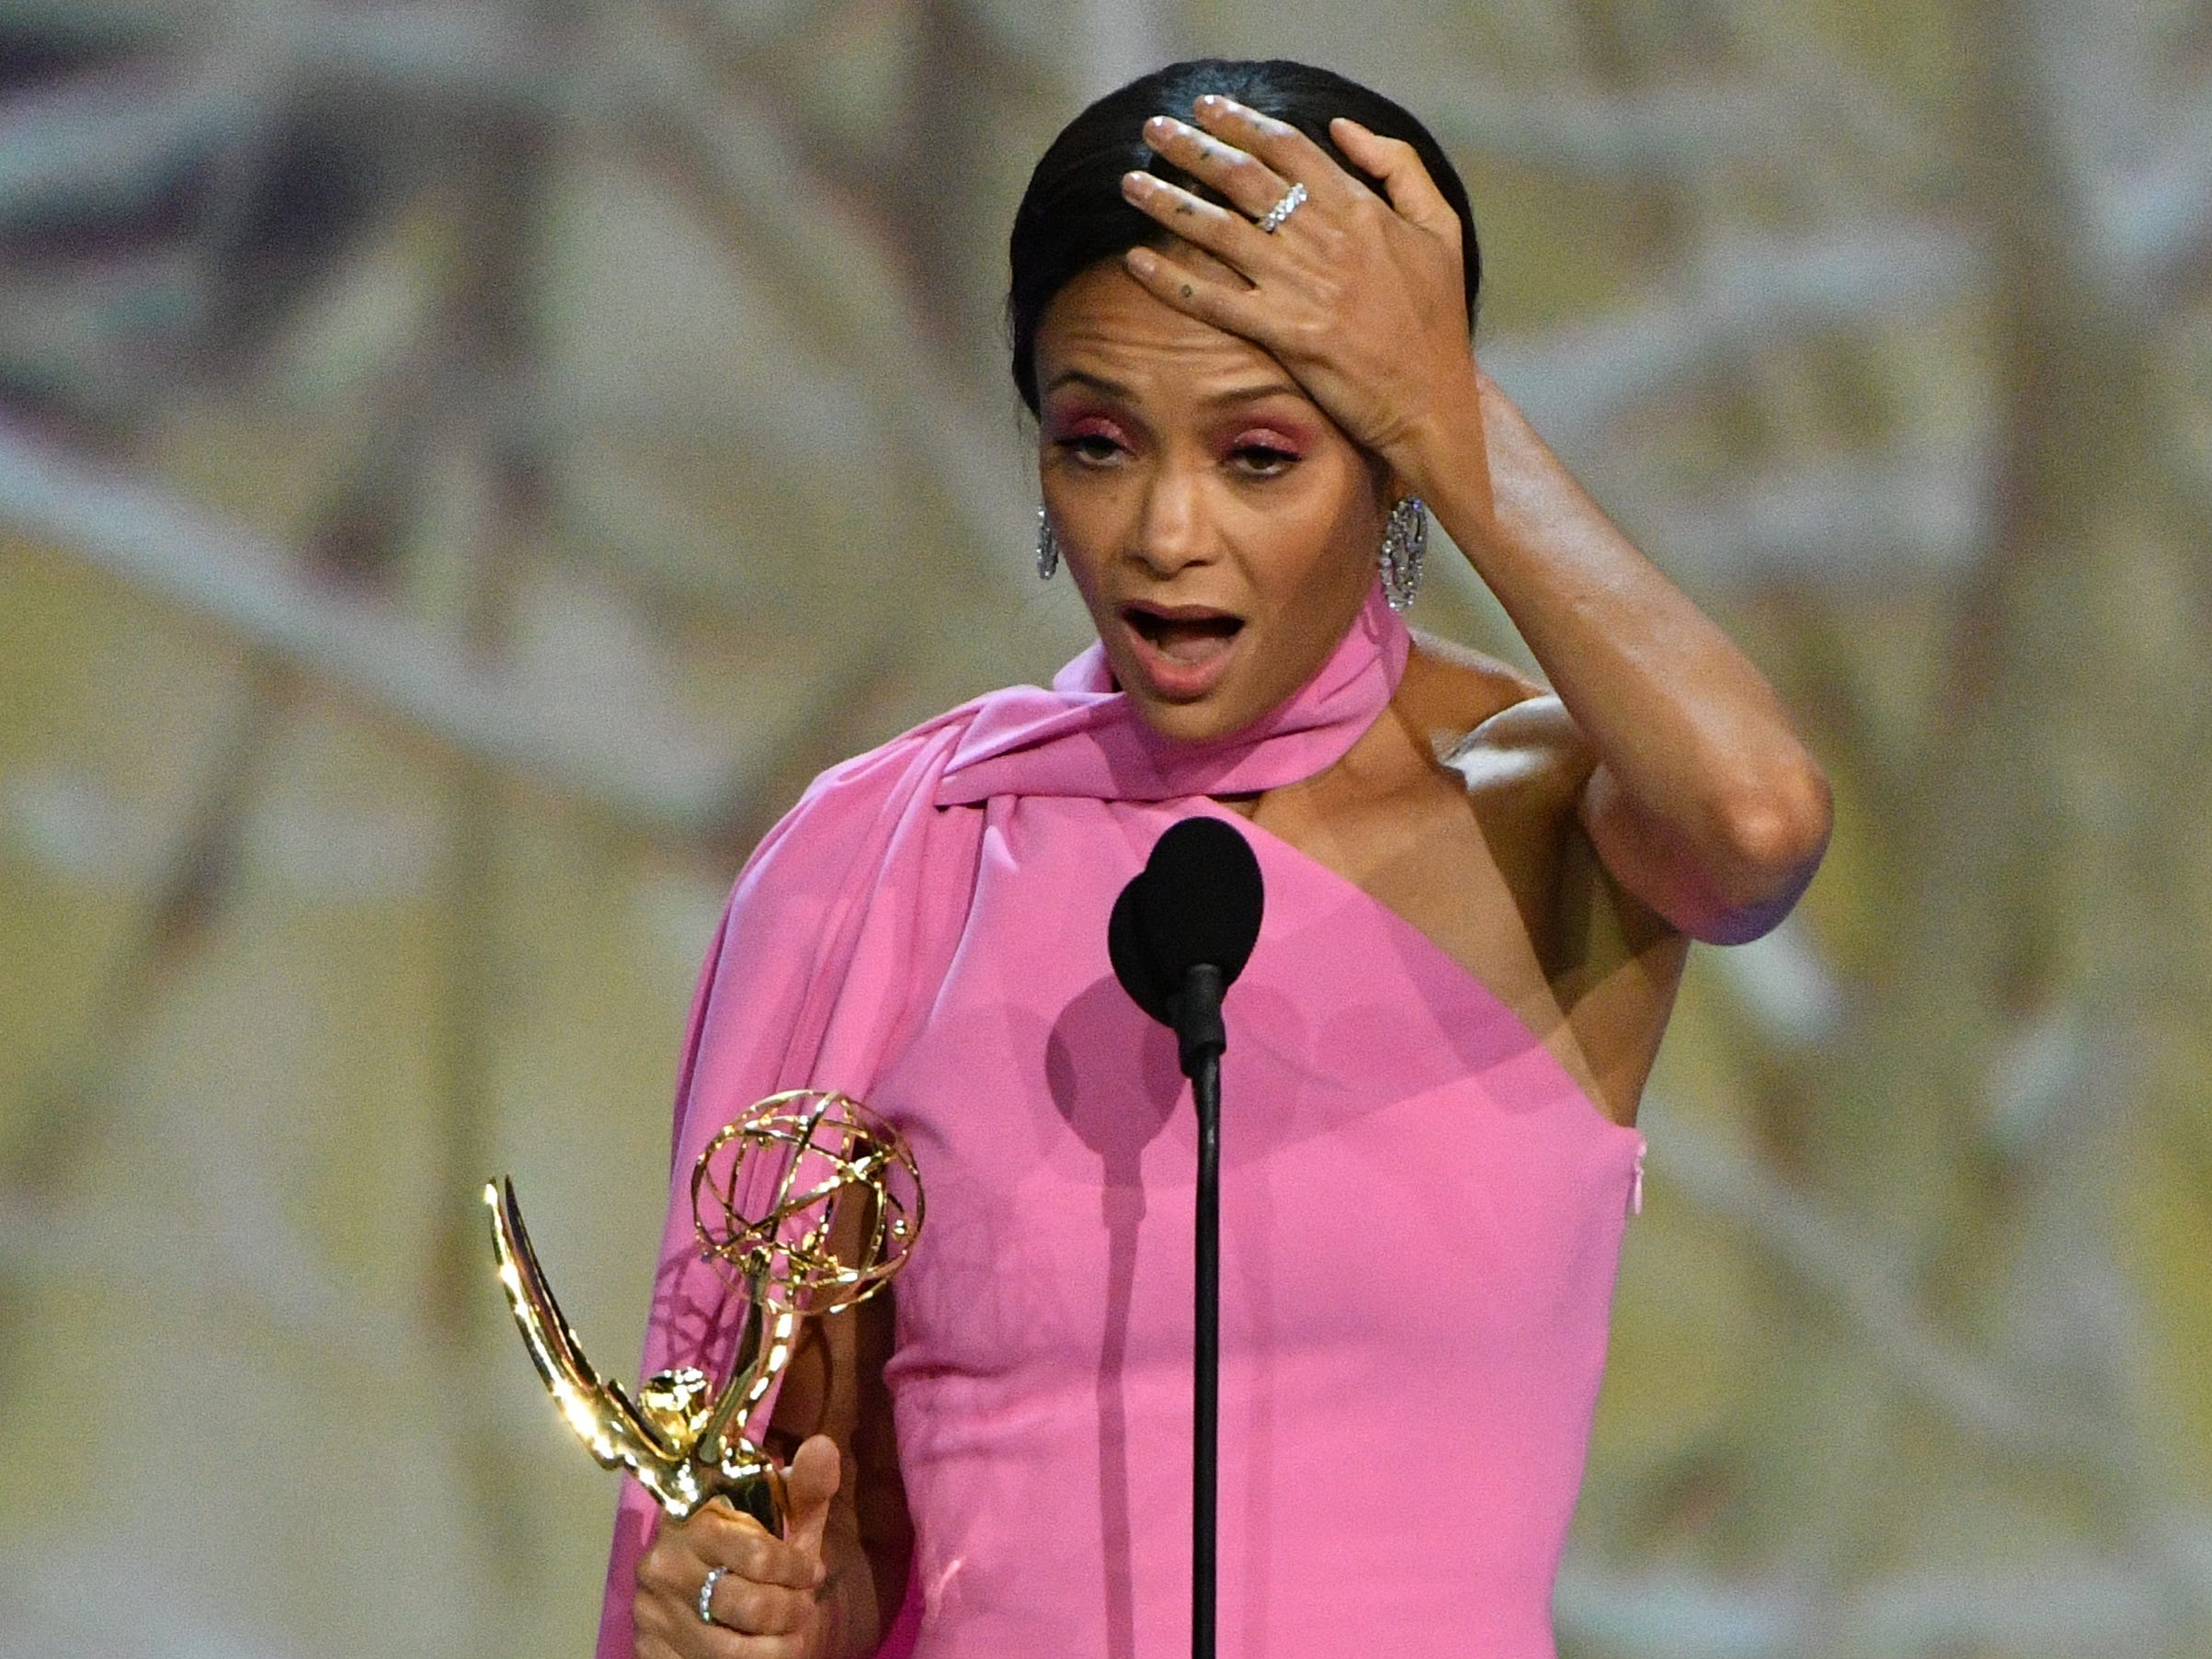 """Thandie Newton accepts the award for supporting actress in a drama series for her role in """"Westworld"""" on HBO."""